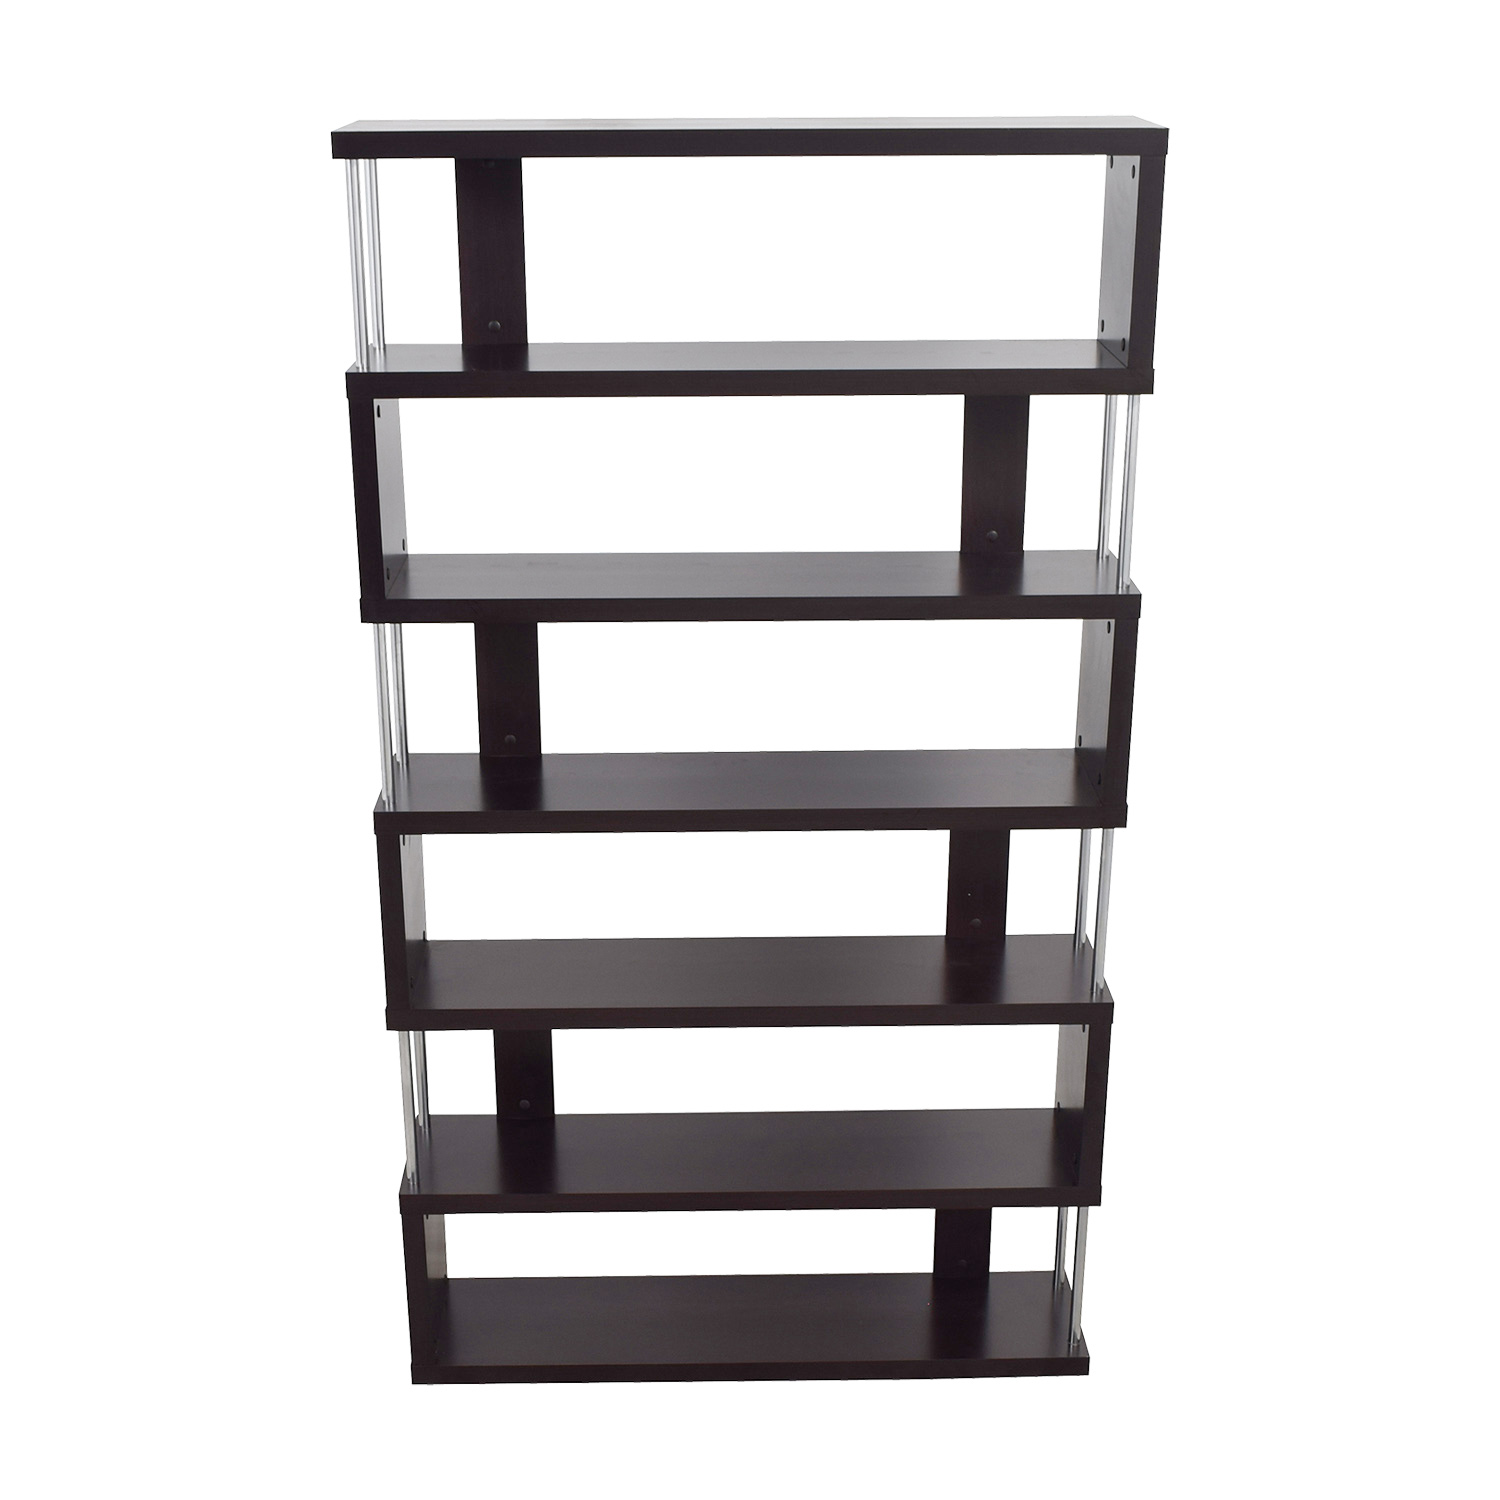 Wayfair Wayfair Geometric Bookcase for sale